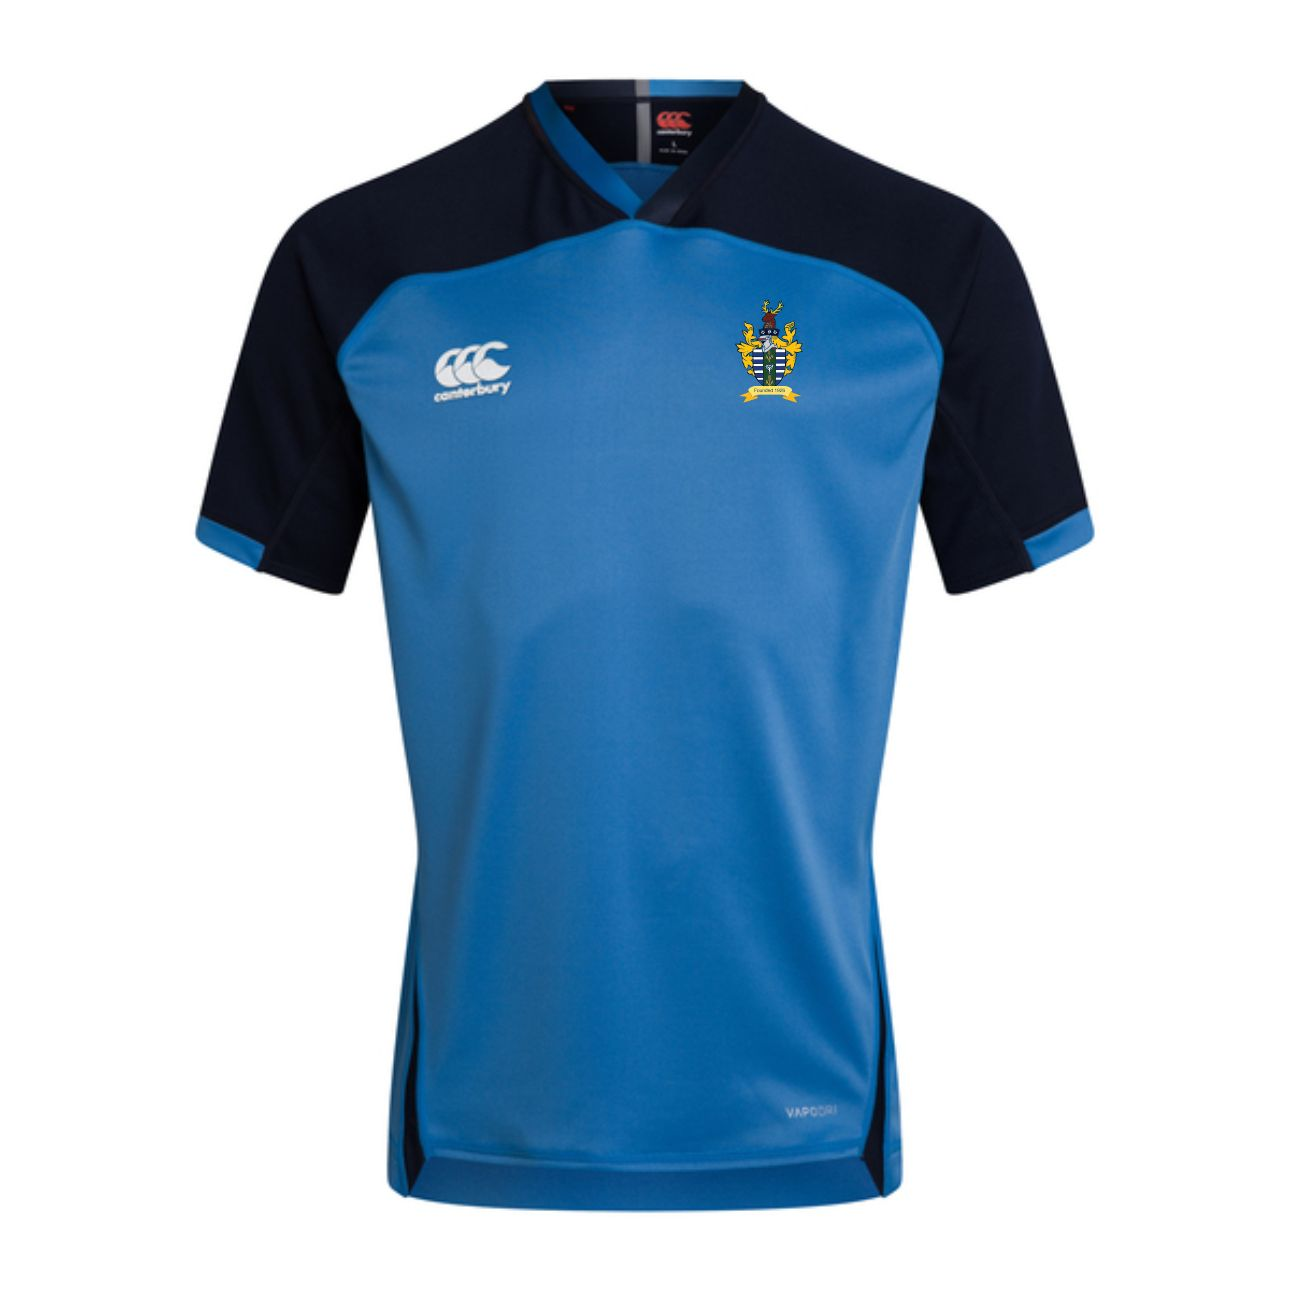 Driffield RUFC CCC Evader Training Shirts Senior